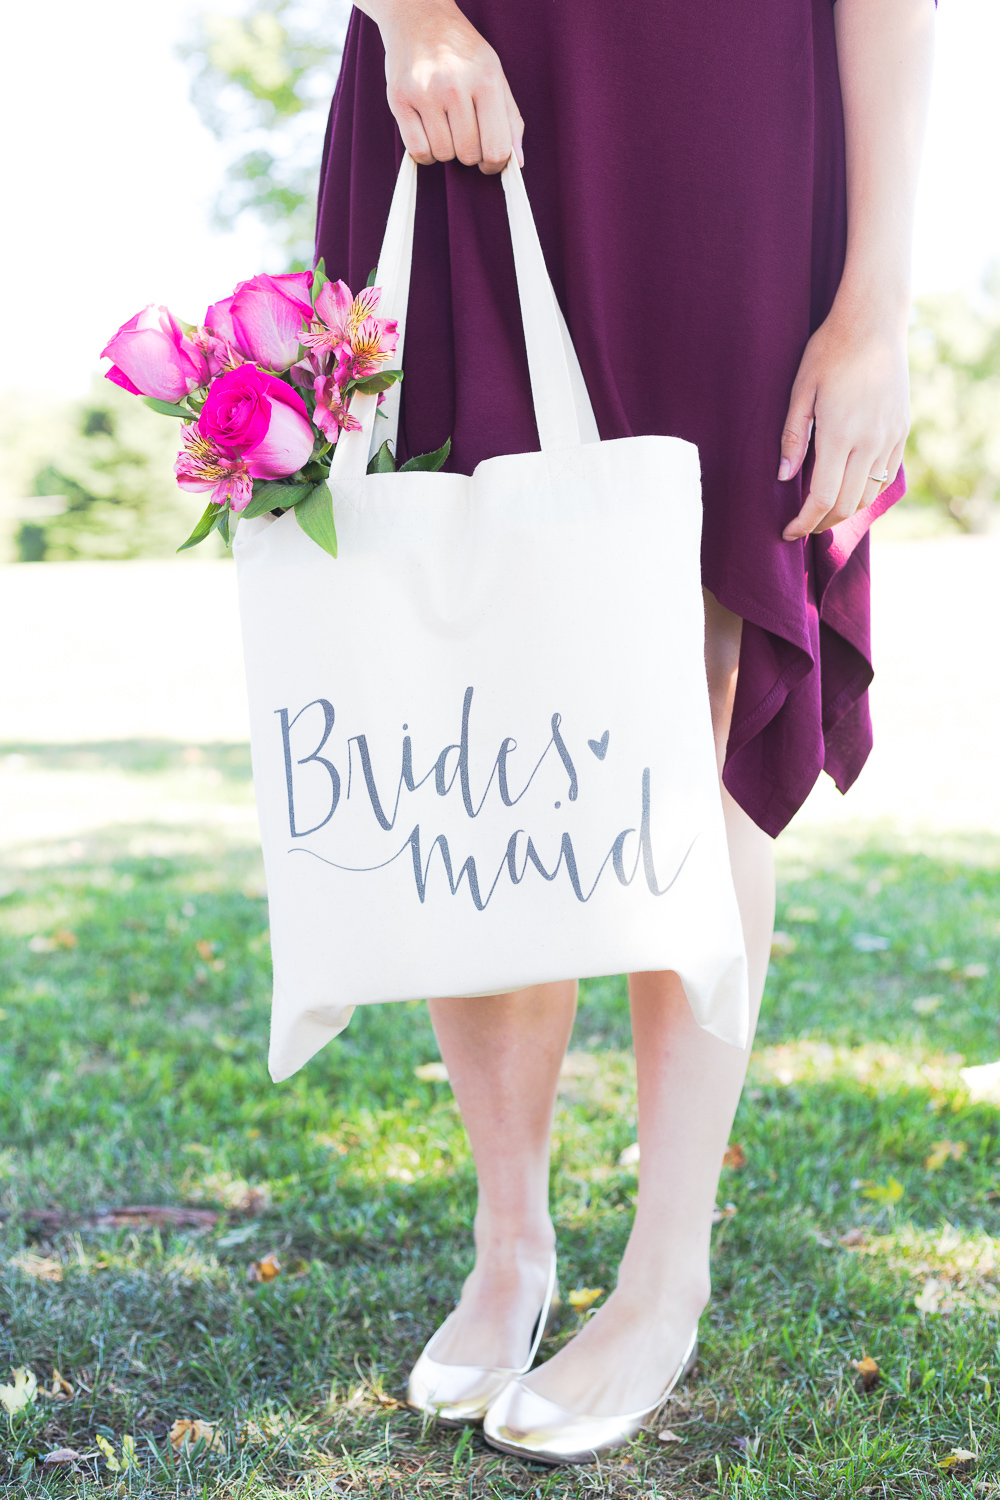 Bridesmaid Gift Ideas These Simple And Inexpensive Bridesmaid Gift Ideas Are The Perfect Thank